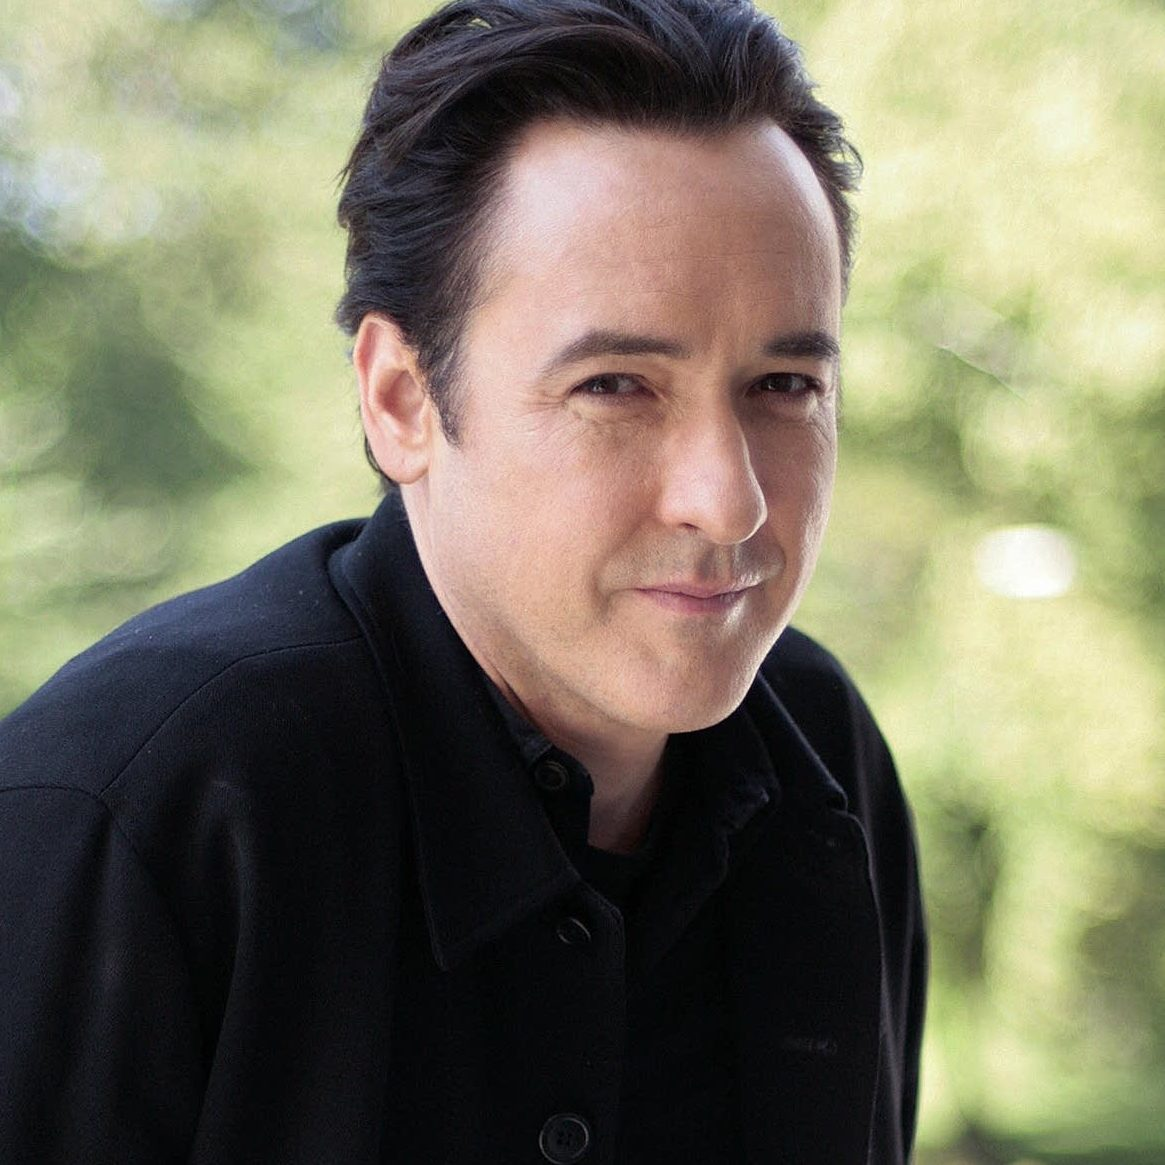 fe43b8 20190926 john cusack e1579773859678 20 Things You Might Not Have Known About Say Anything...